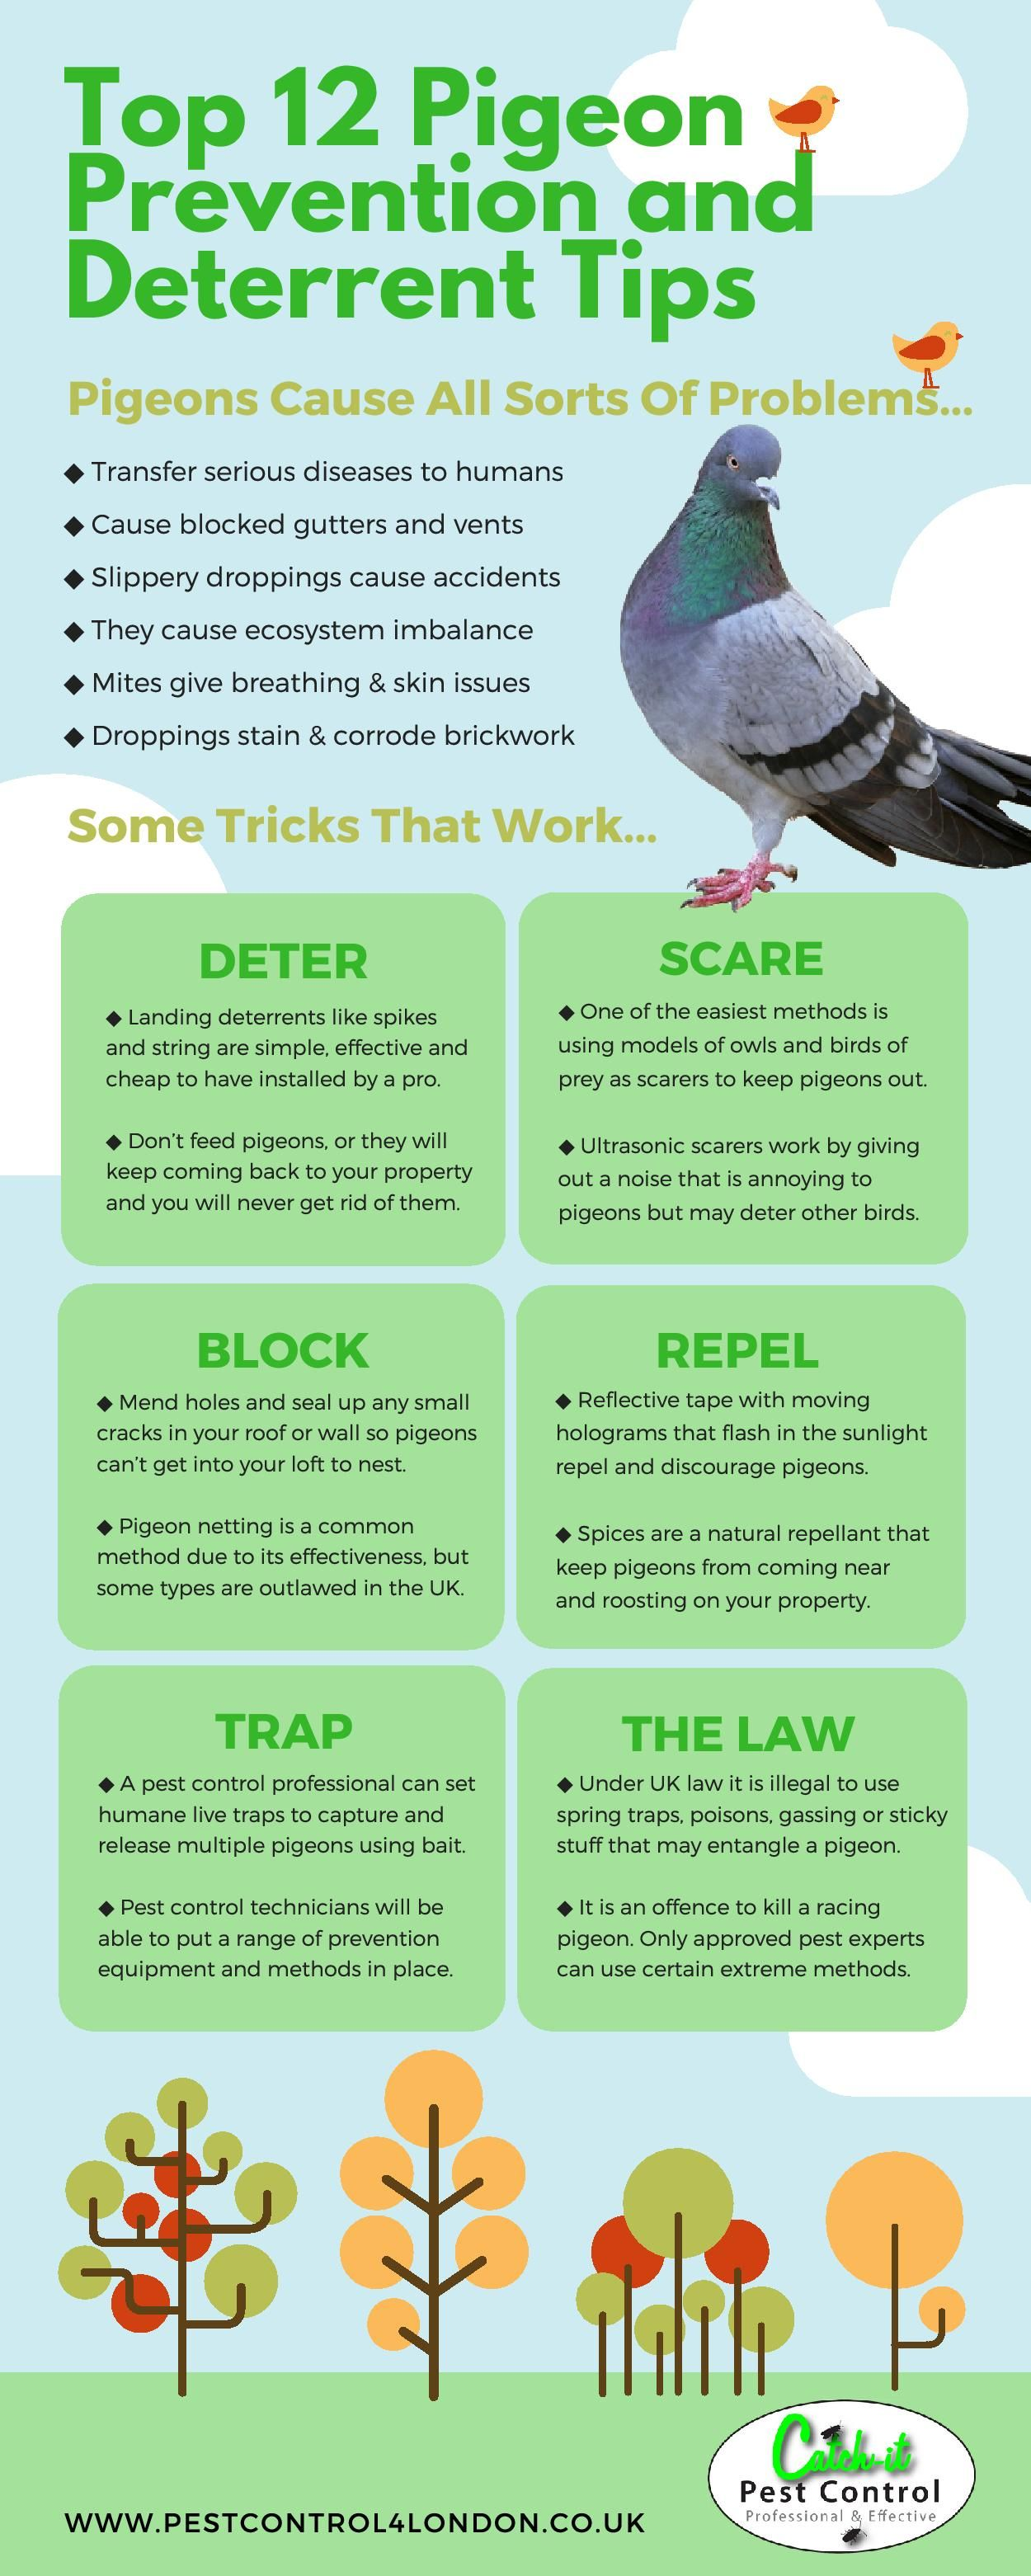 Pin by akellajustus on Do you know how to deter pigeons? | Pigeon pest control, Garden pests, Pigeon